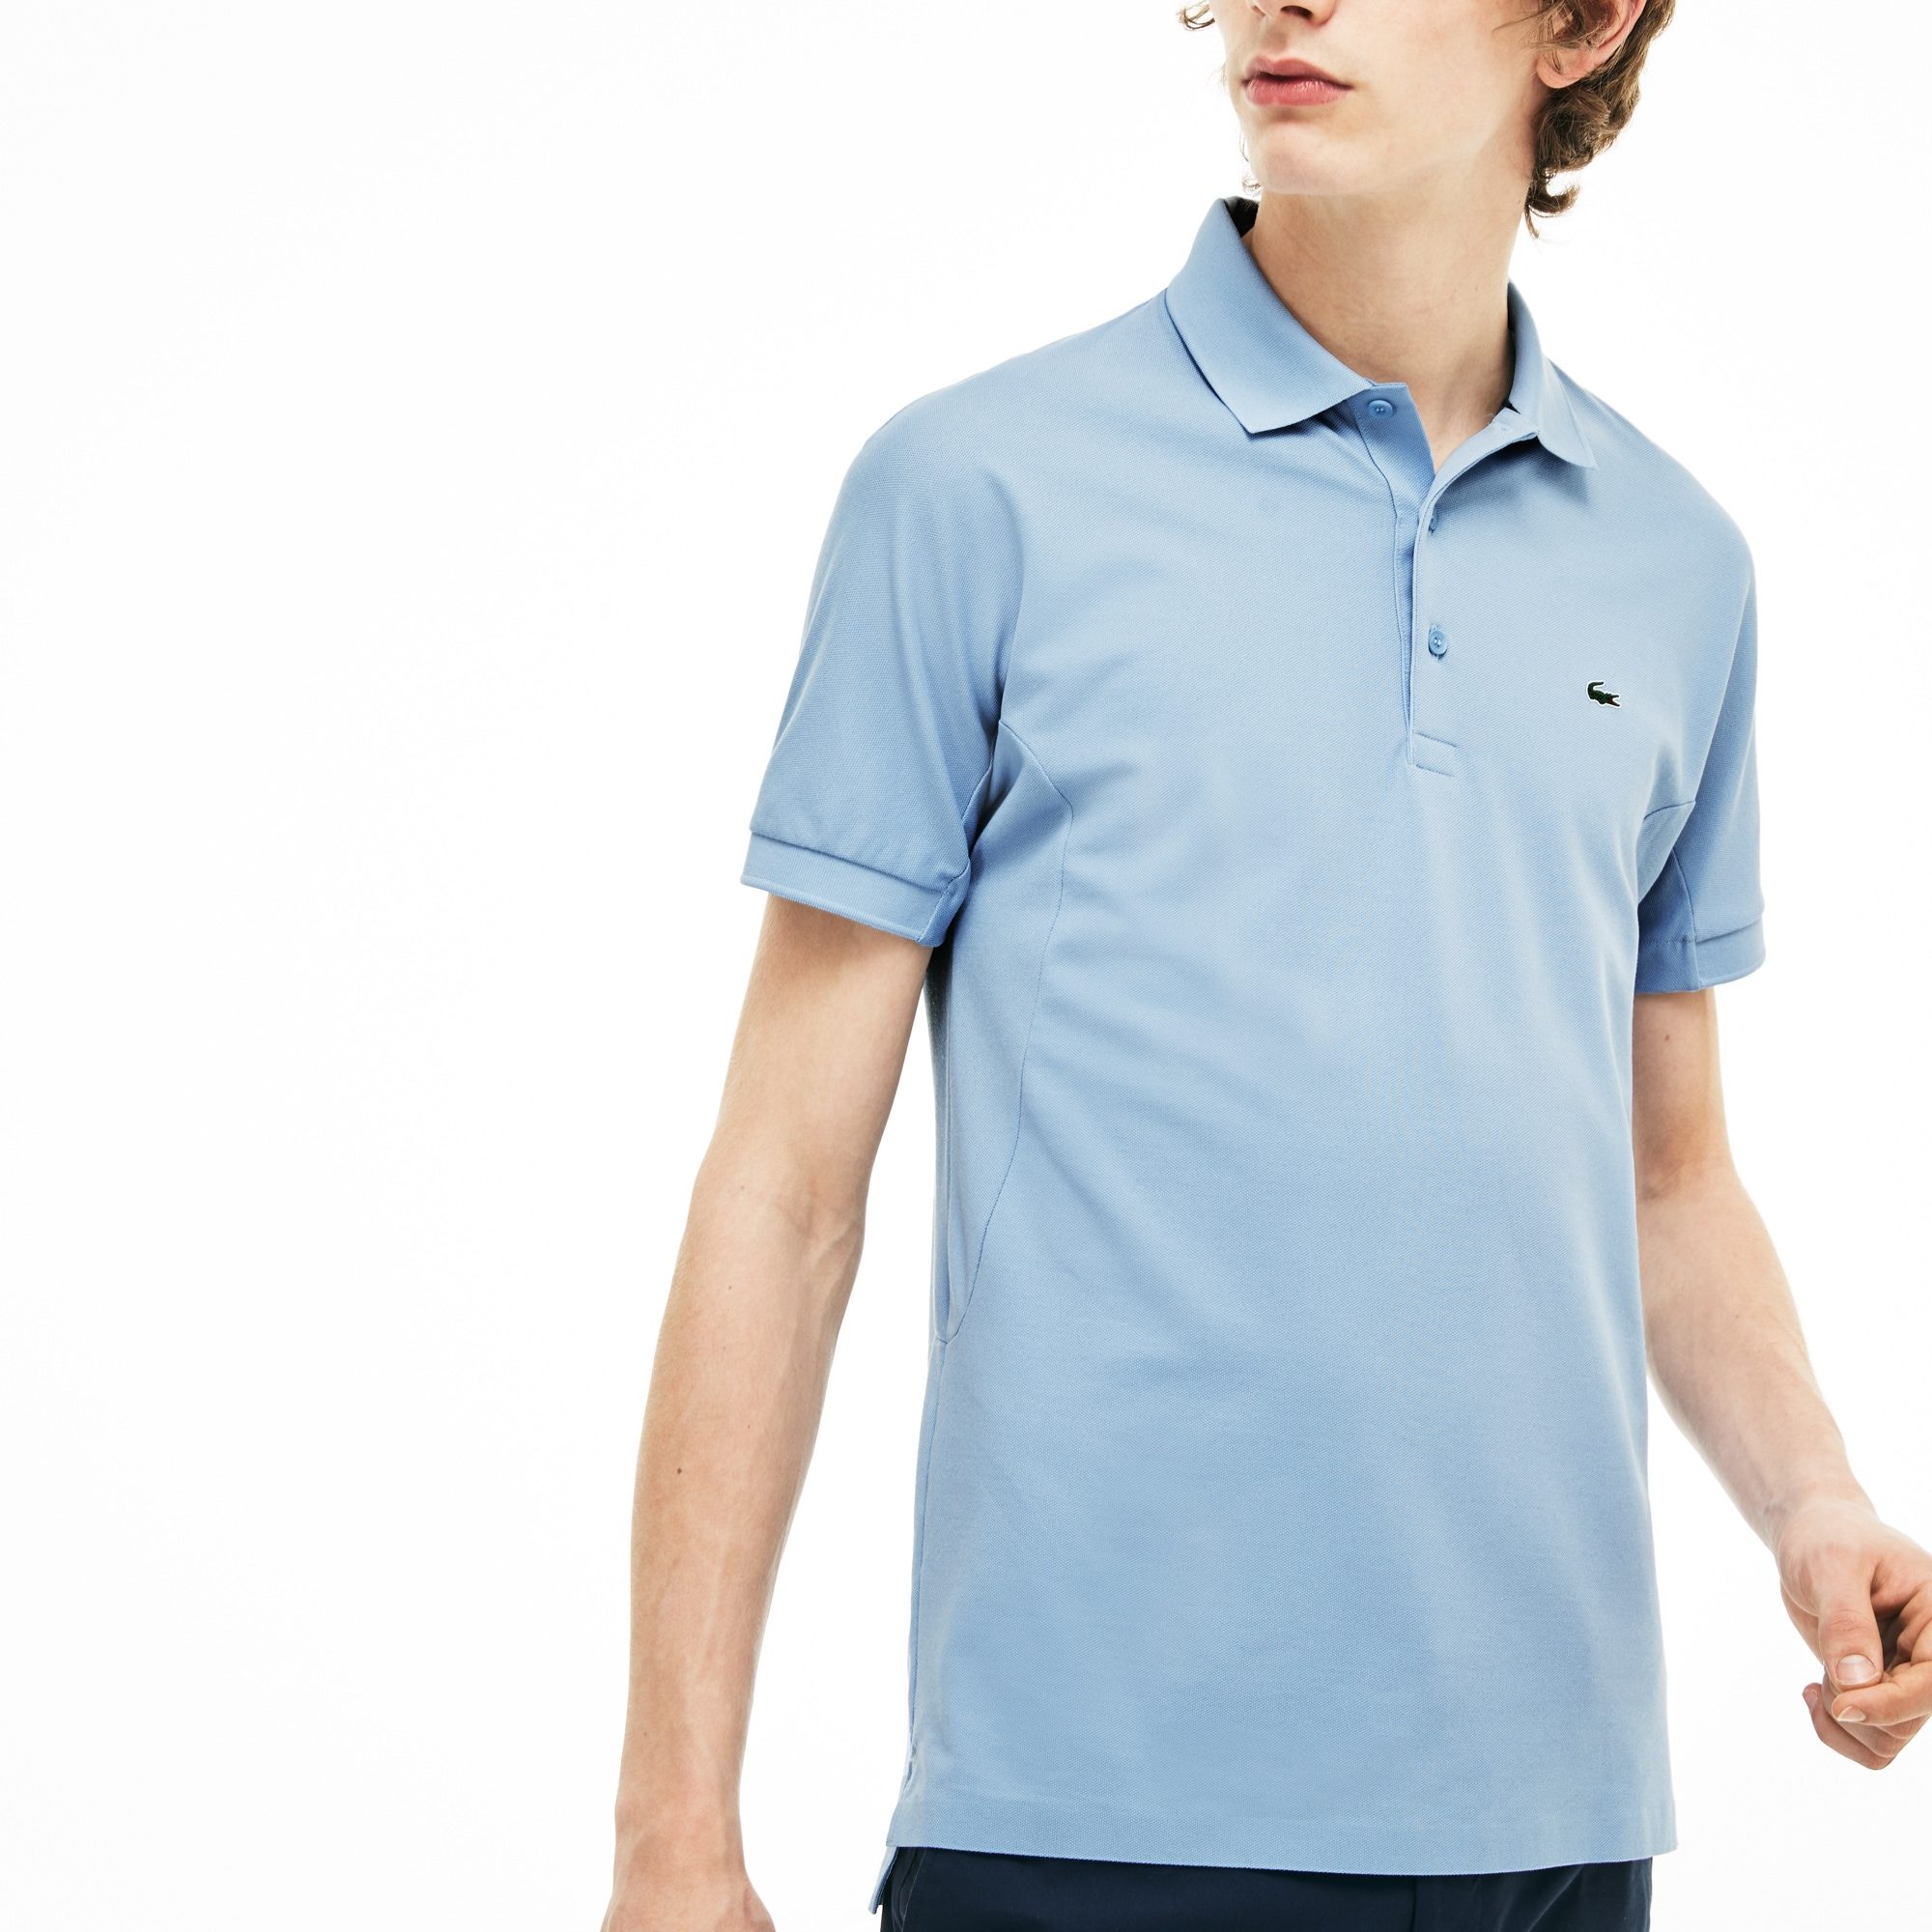 Regular fit Lacoste polo, piqué, limited edition 85-jarig jubileum